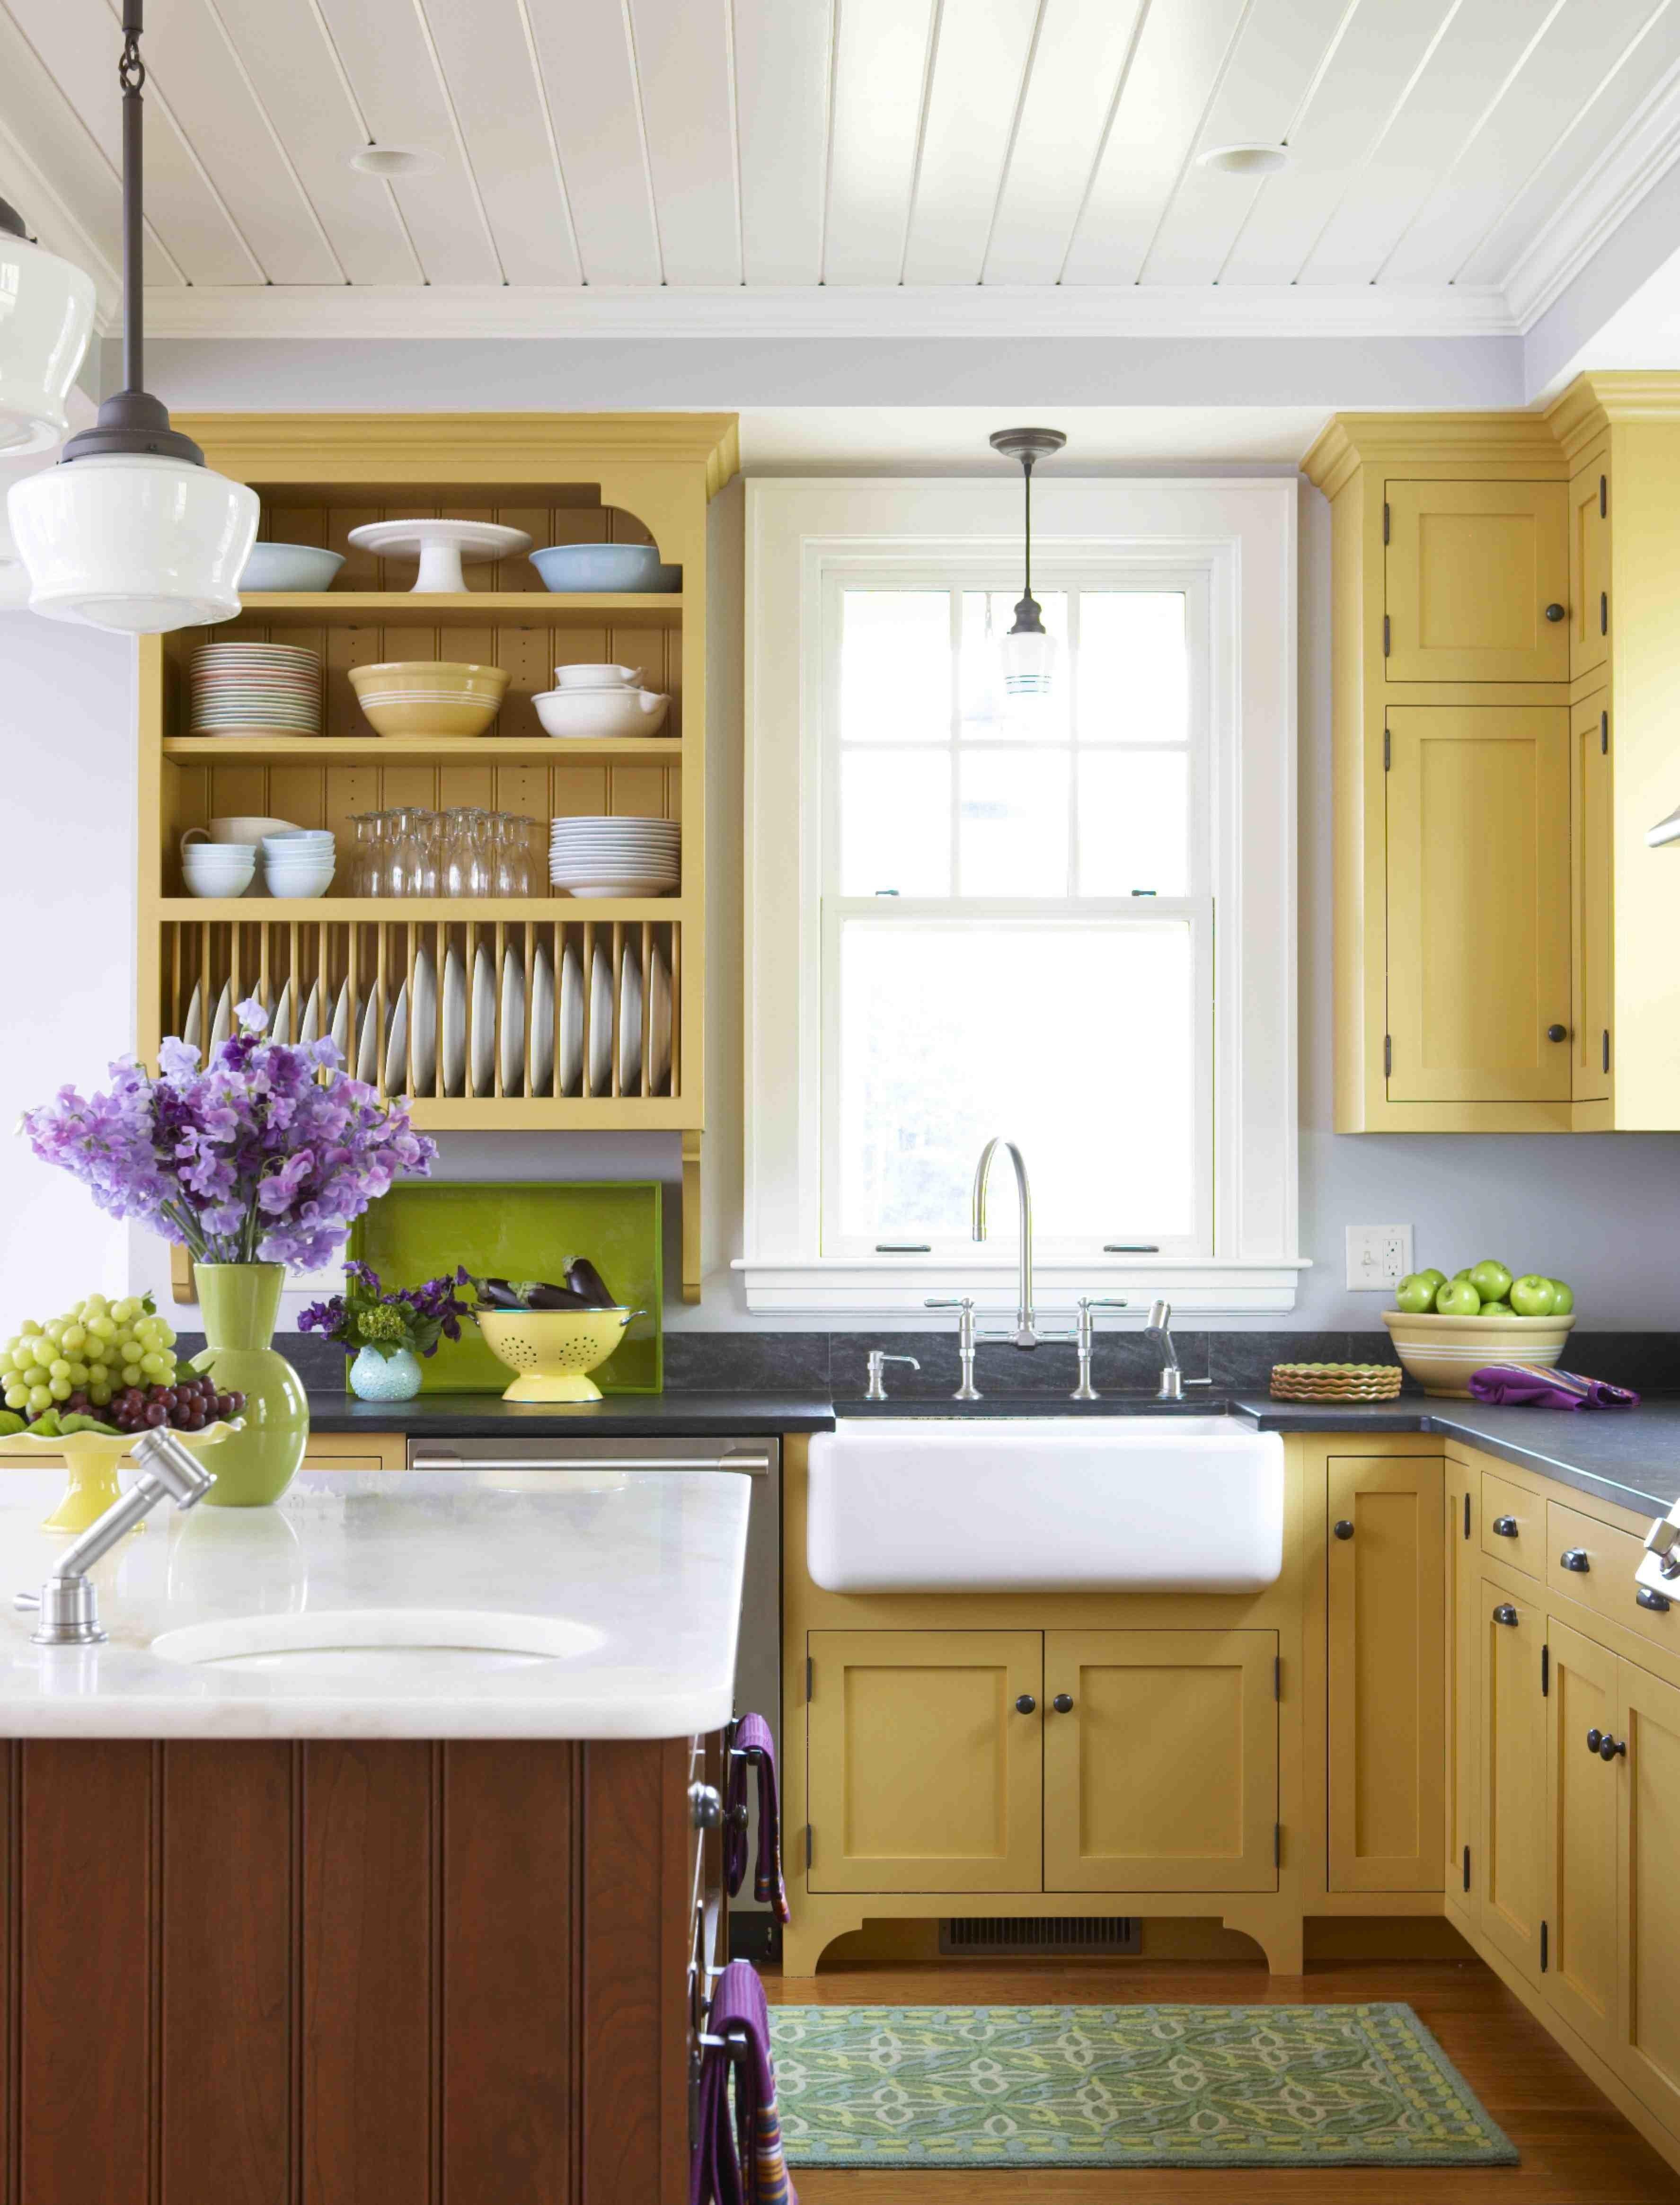 Favorite Kitchens 2010 Stacystyle Blog